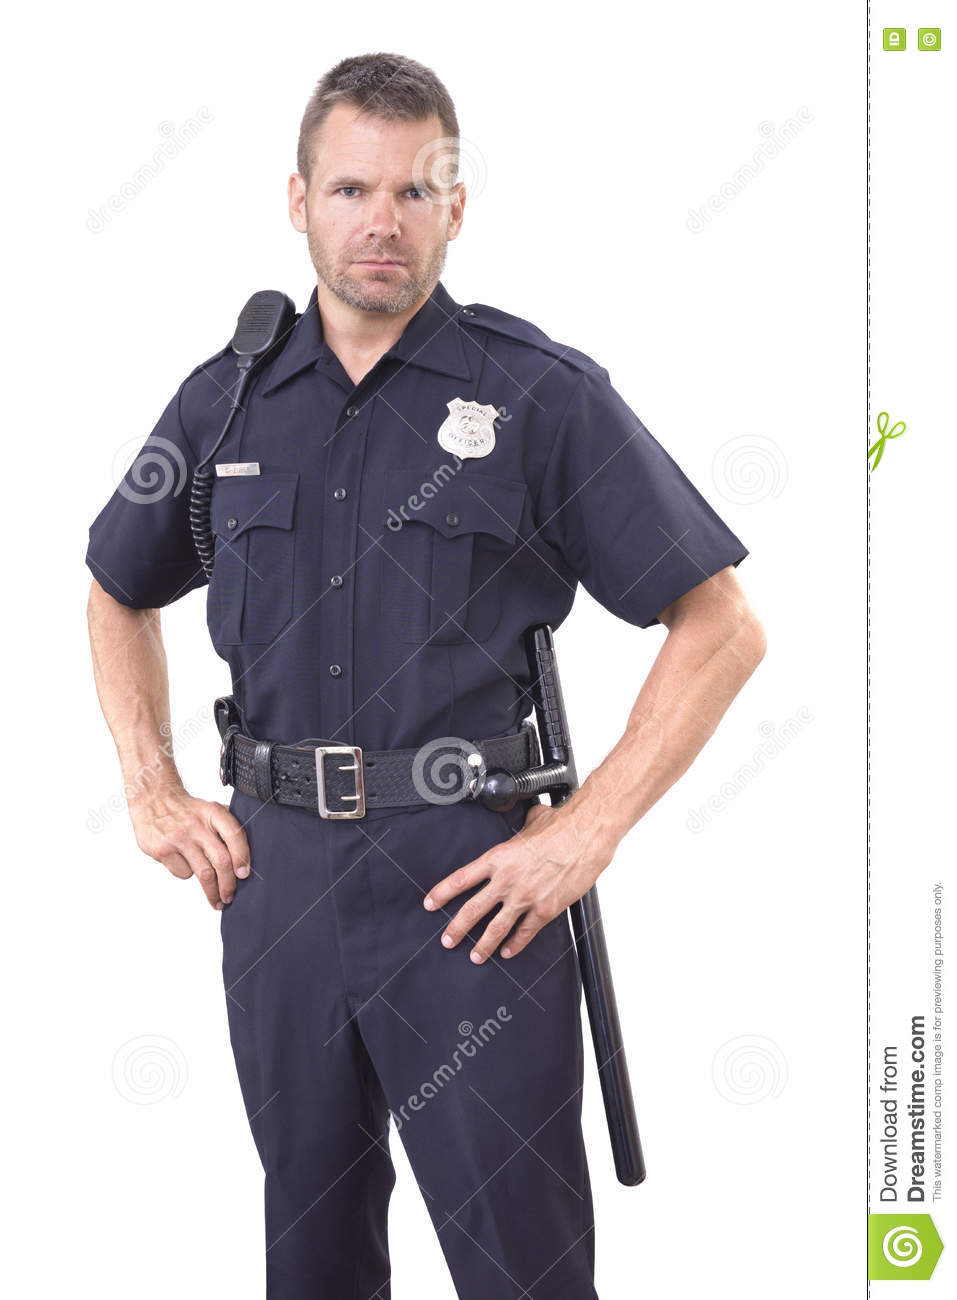 Uniformed Police Officer On White Background Stock Photo ...